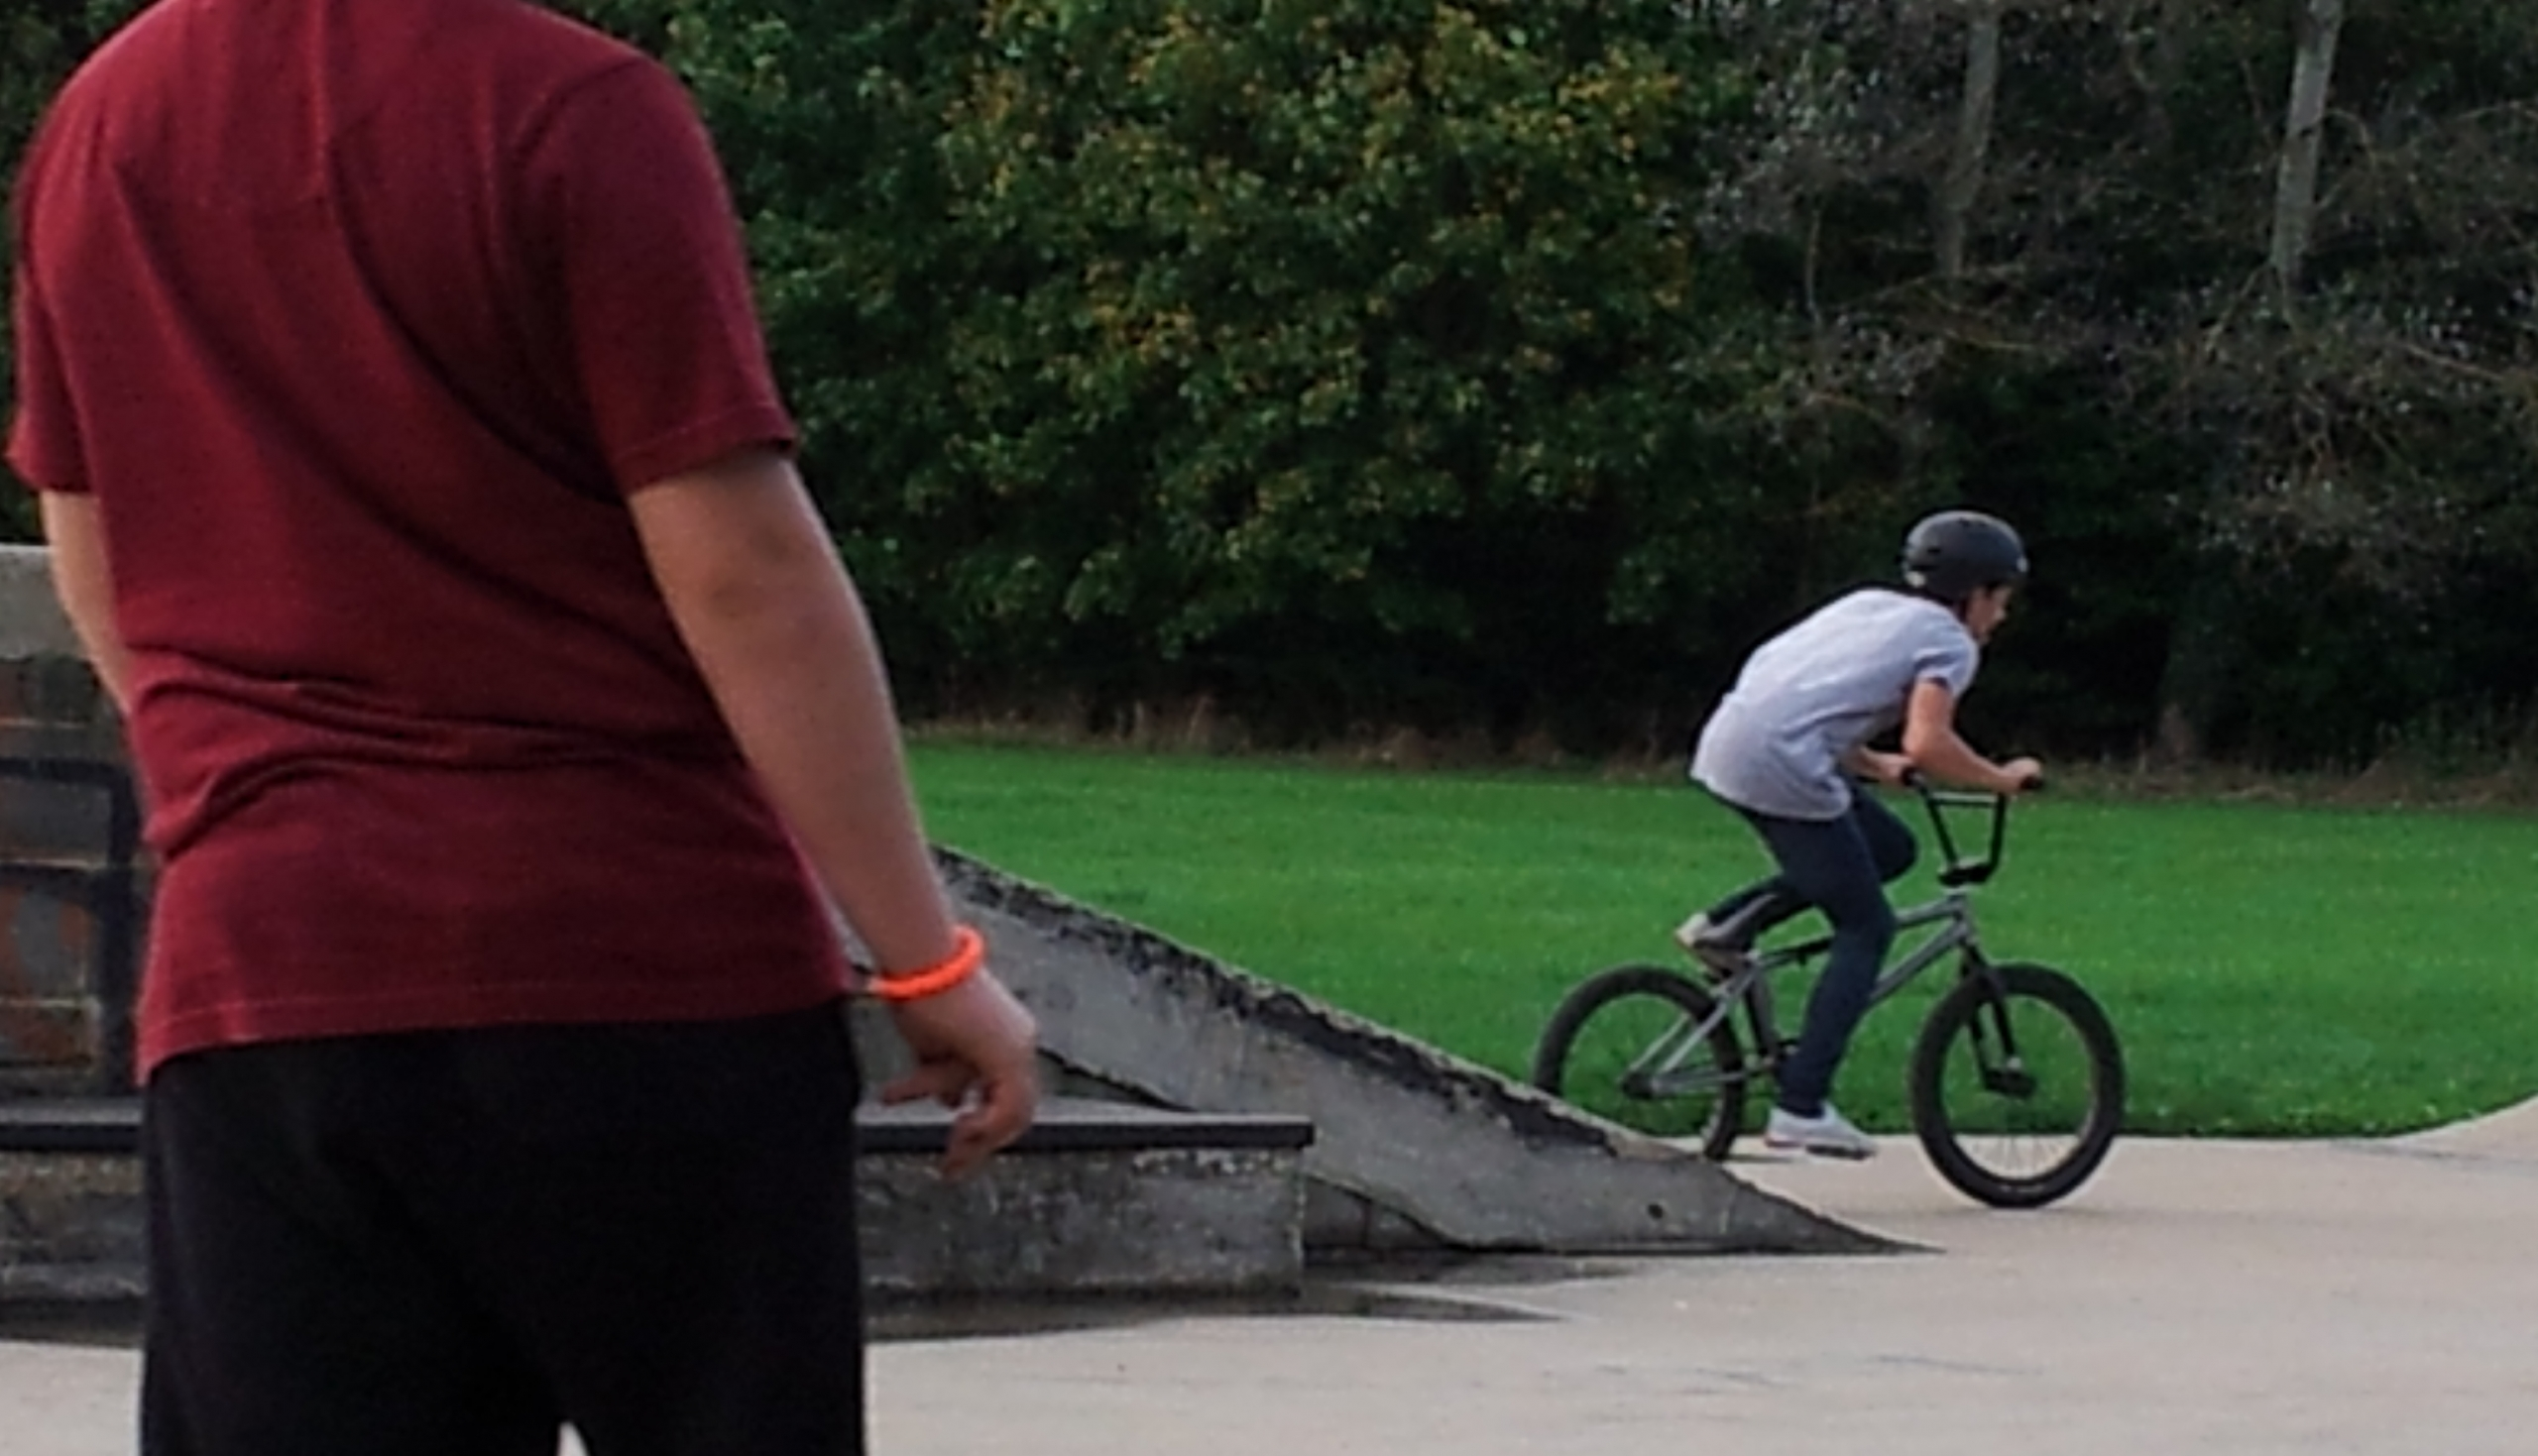 Skateboarder stops to watch BMXer go for a trick